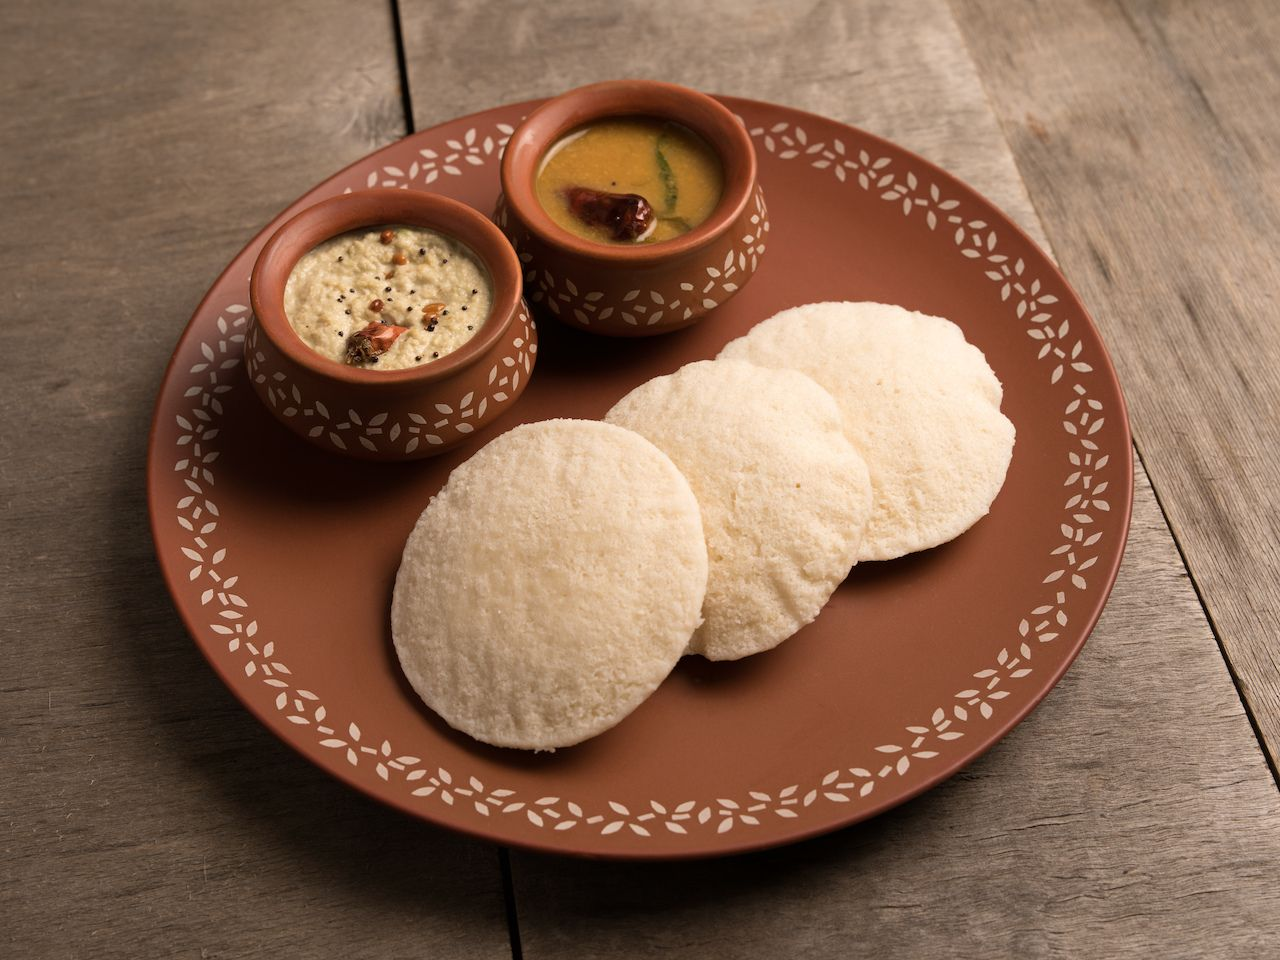 idli with sambar and coconut chutney